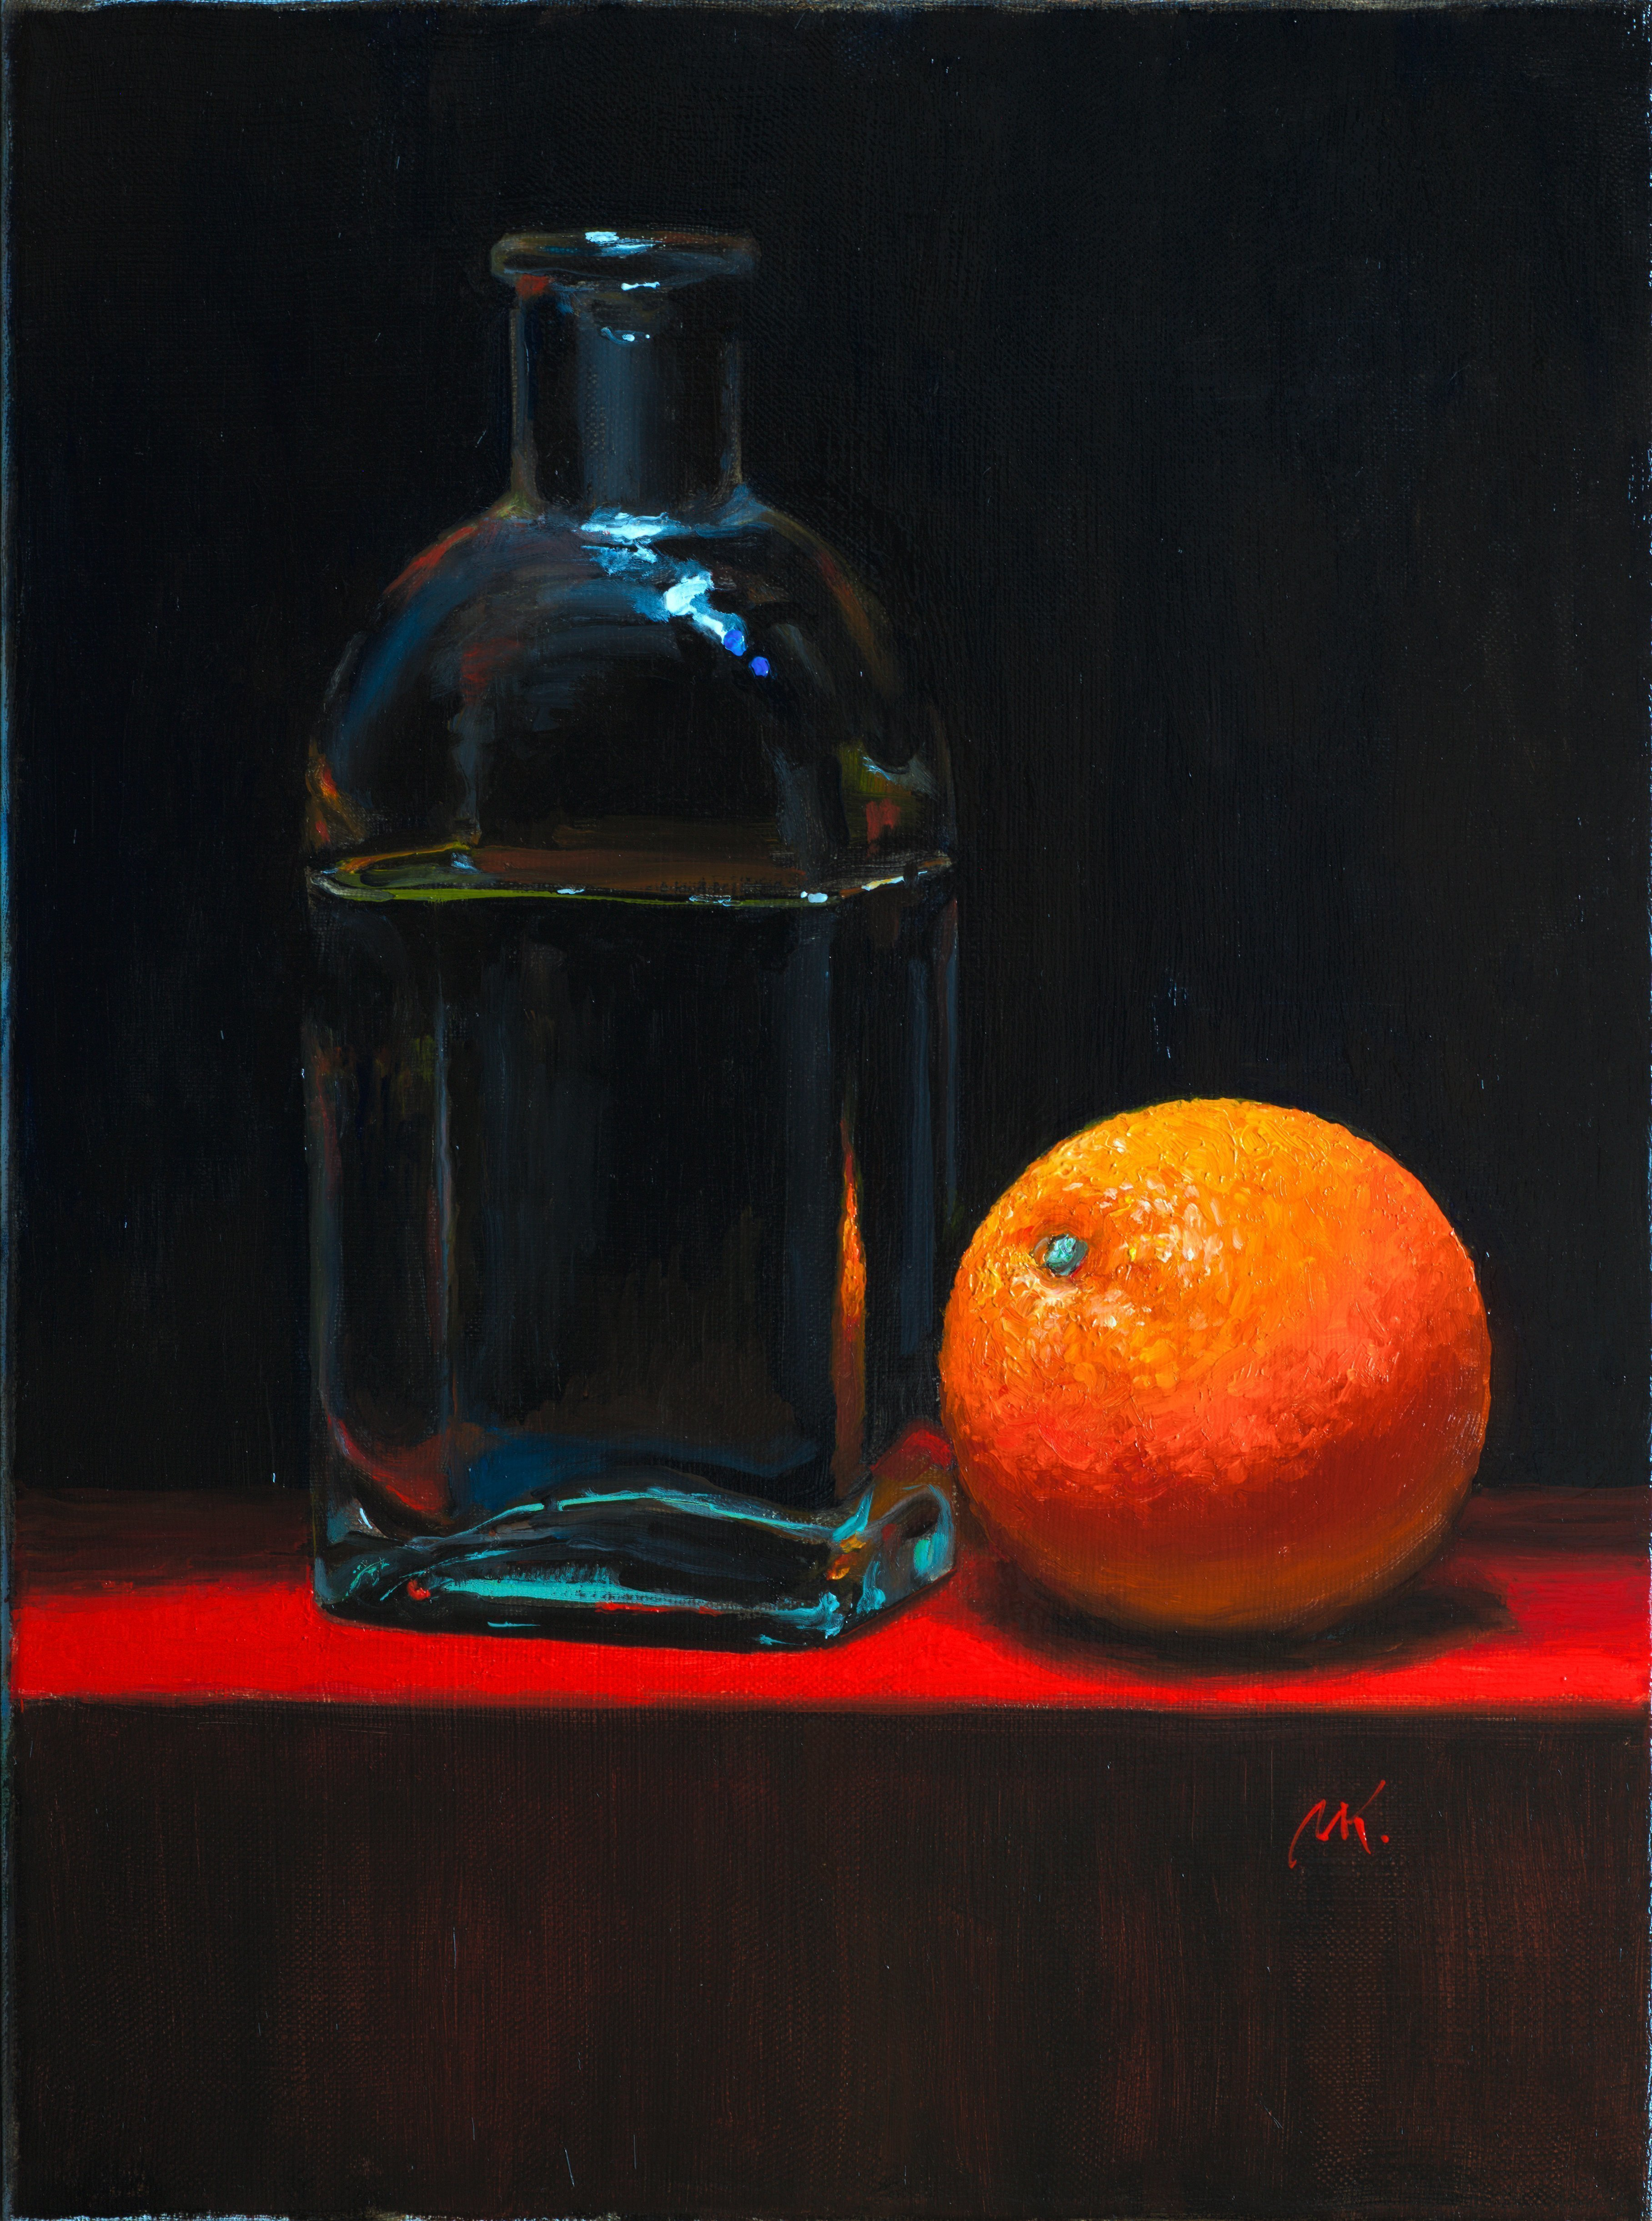 Mikhail Velavok; orange, 2017, Original Painting Oil, 11.8 x 15.7 inches. Artwork description: 241 Original oil on canvas stretched on a wooden underframe. The artwork is being sold unframed. The frame in the additional photo is an example only.orange, red, dark, glass, bottle...